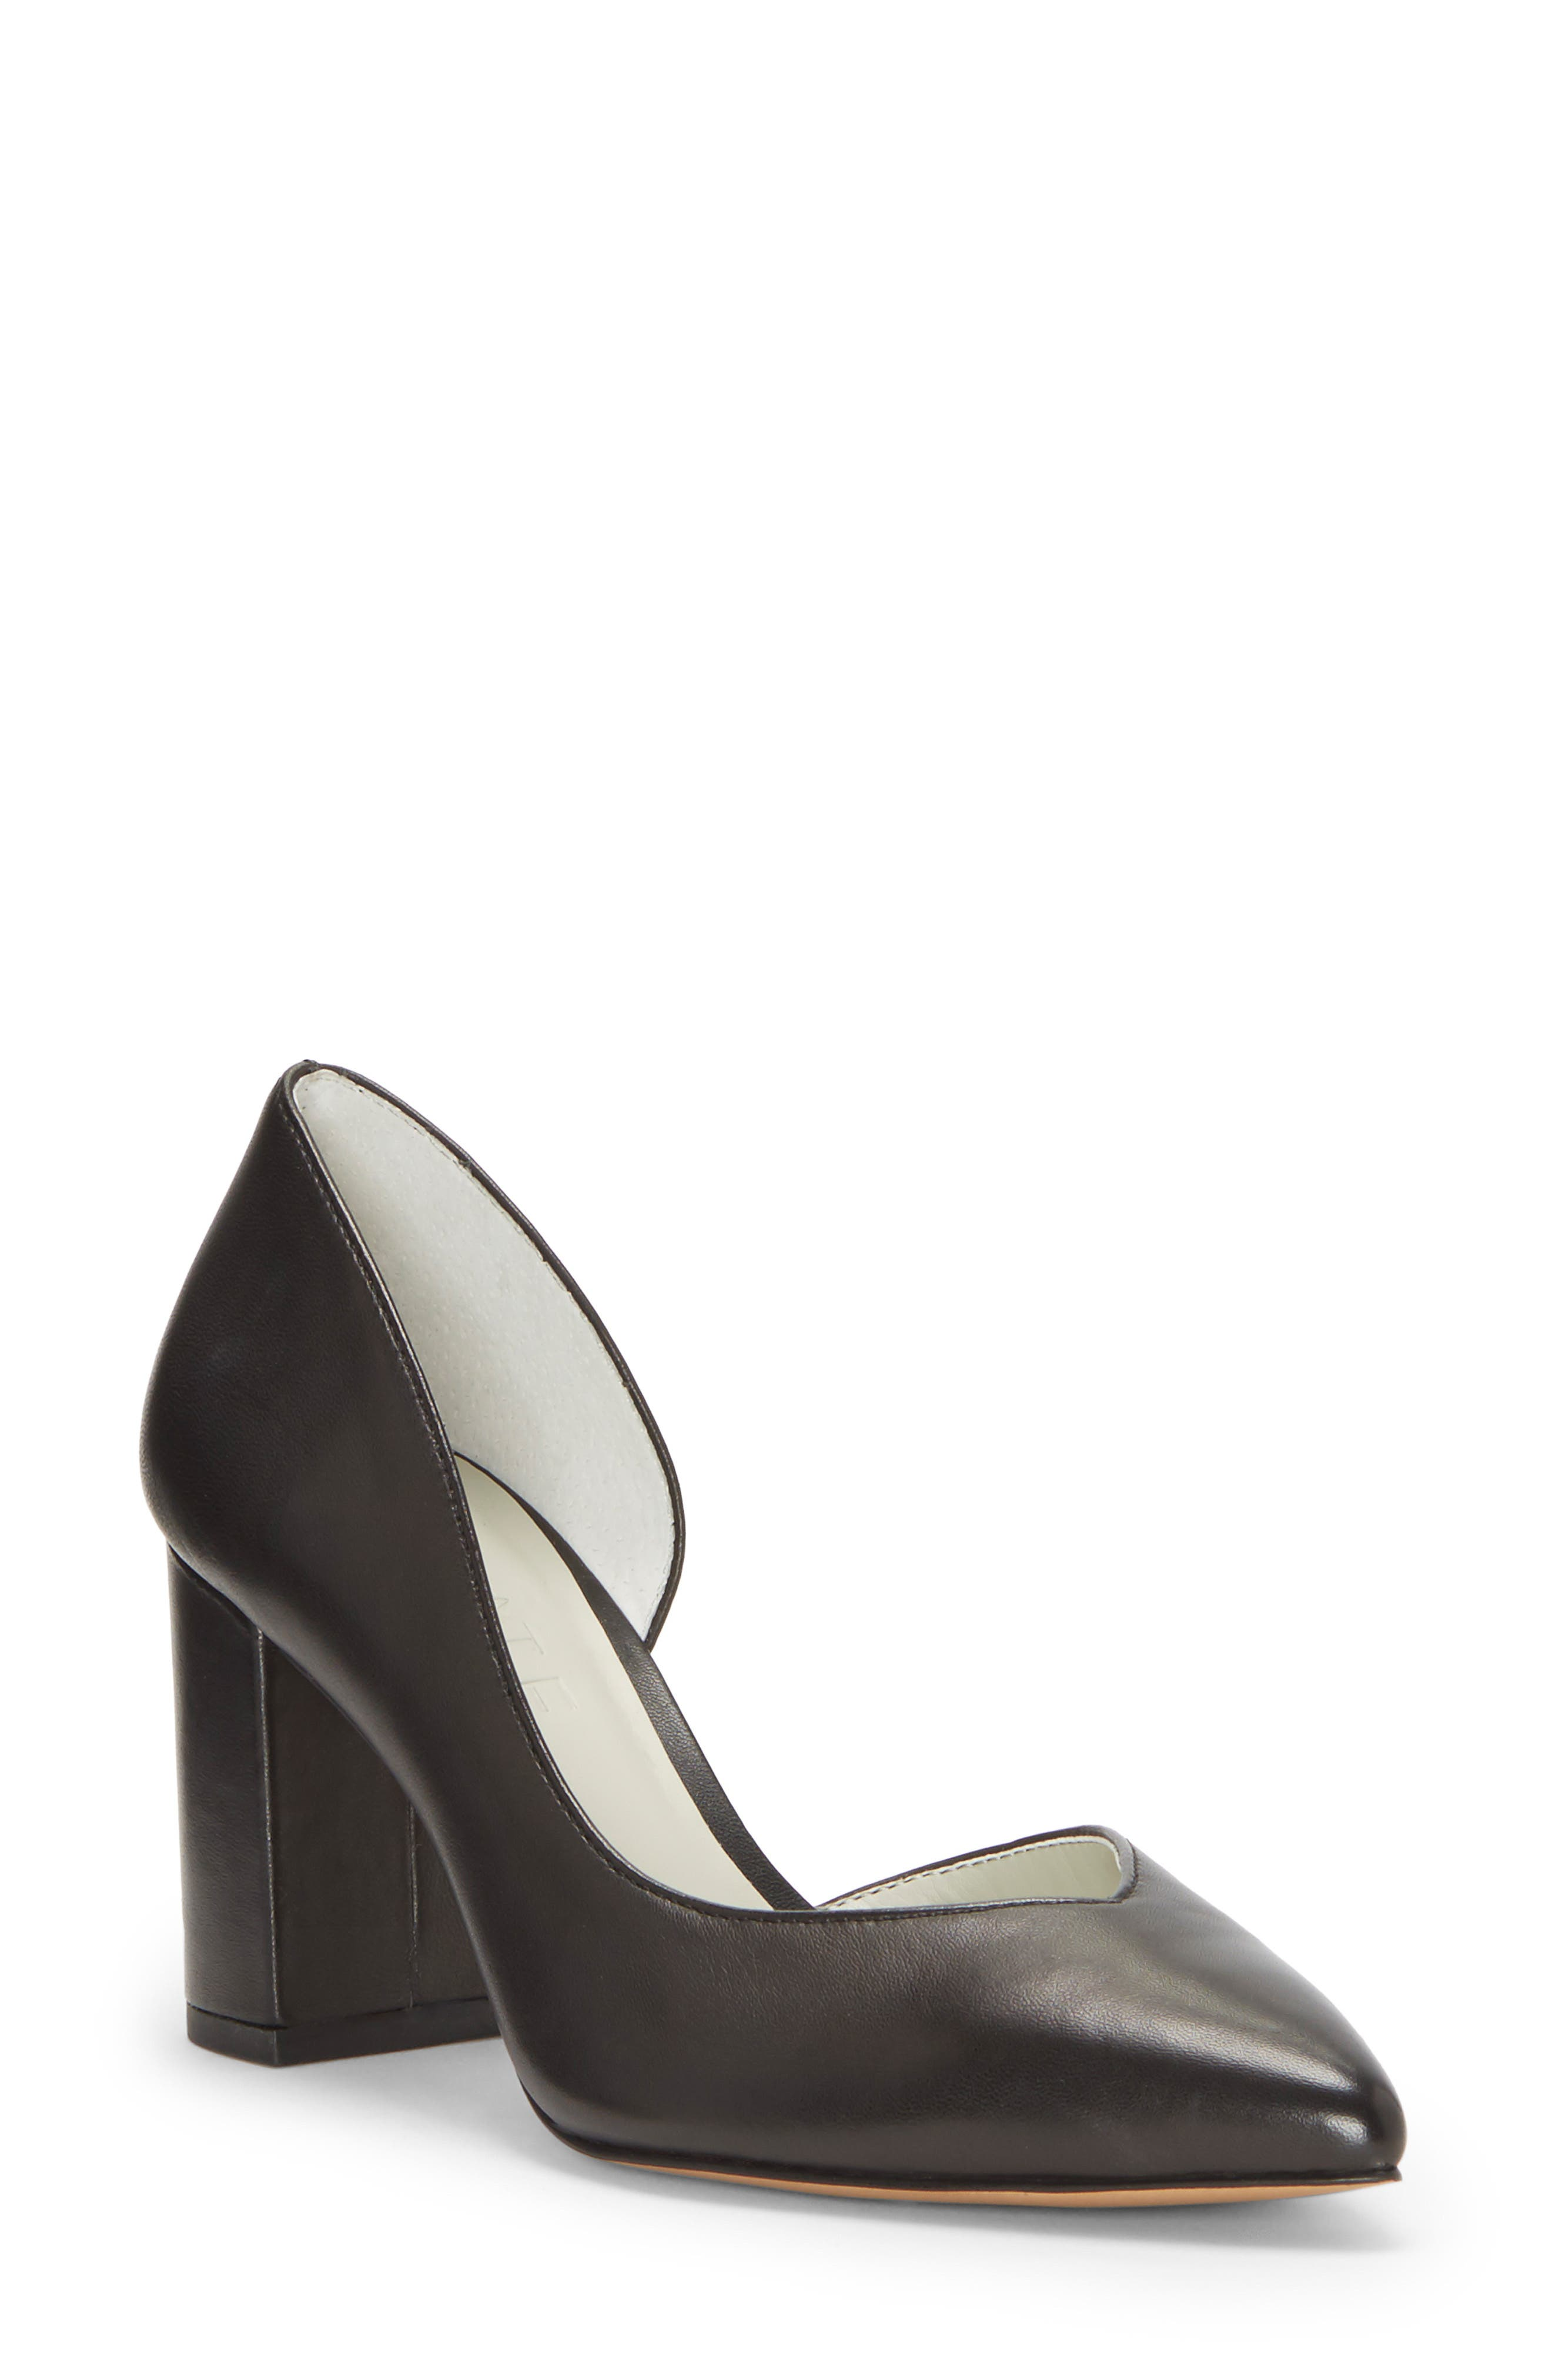 Sisteen Half d'Orsay Pump,                         Main,                         color, BLACK LEATHER